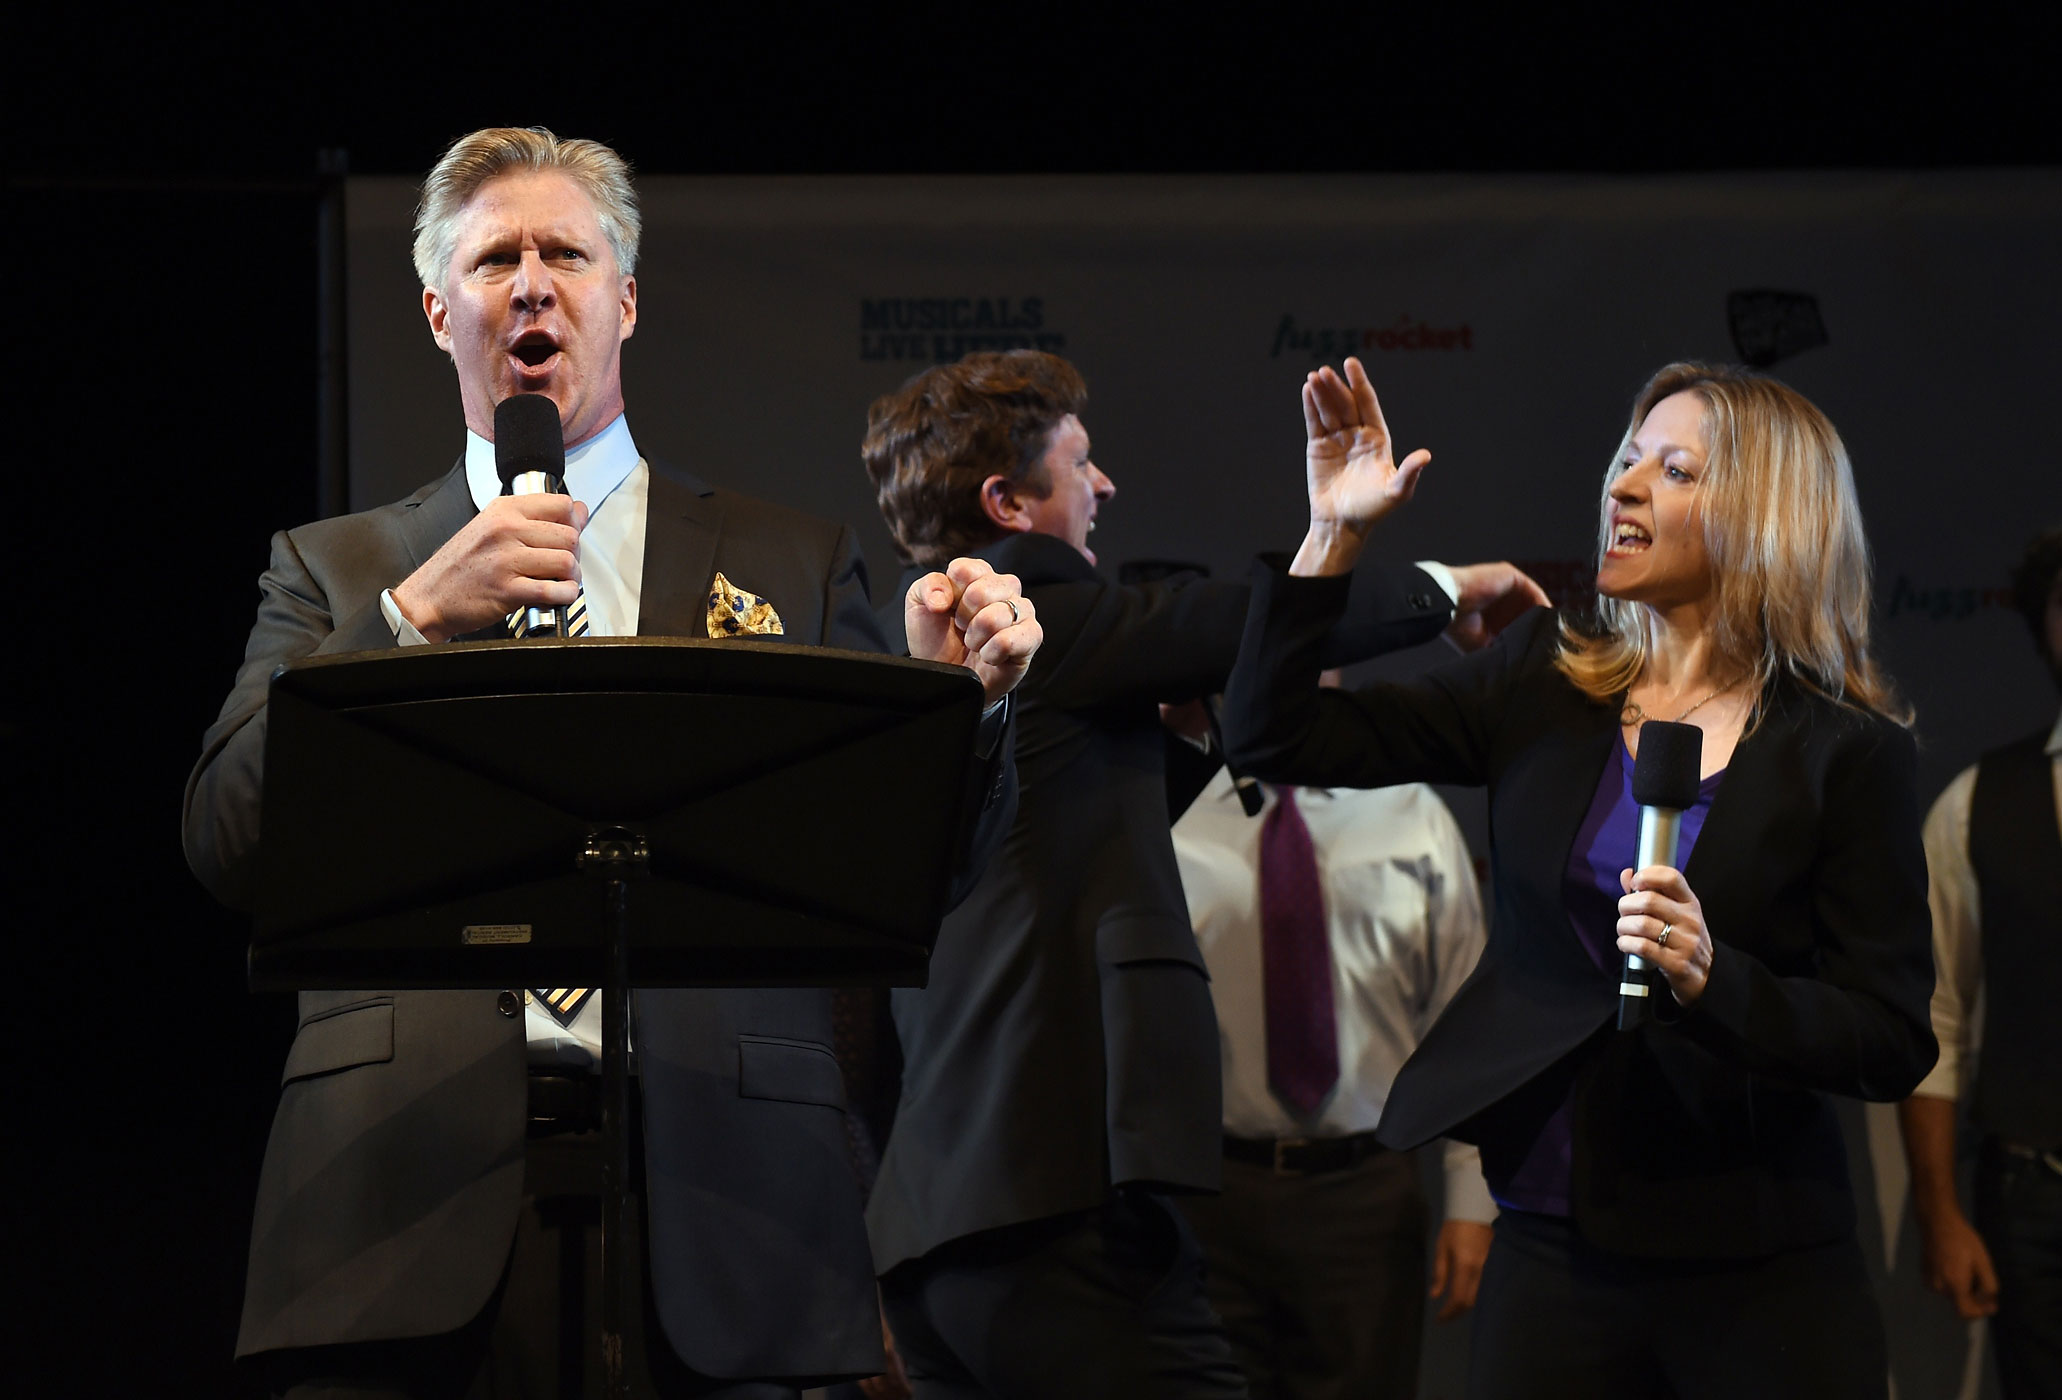 Karl Kenzler, left, Alet Taylor, right, and Duke LaFoon, center, perform a song from Clinton: The Musical during the New York Musical Theatre Festival special preview on July 2, 2014.